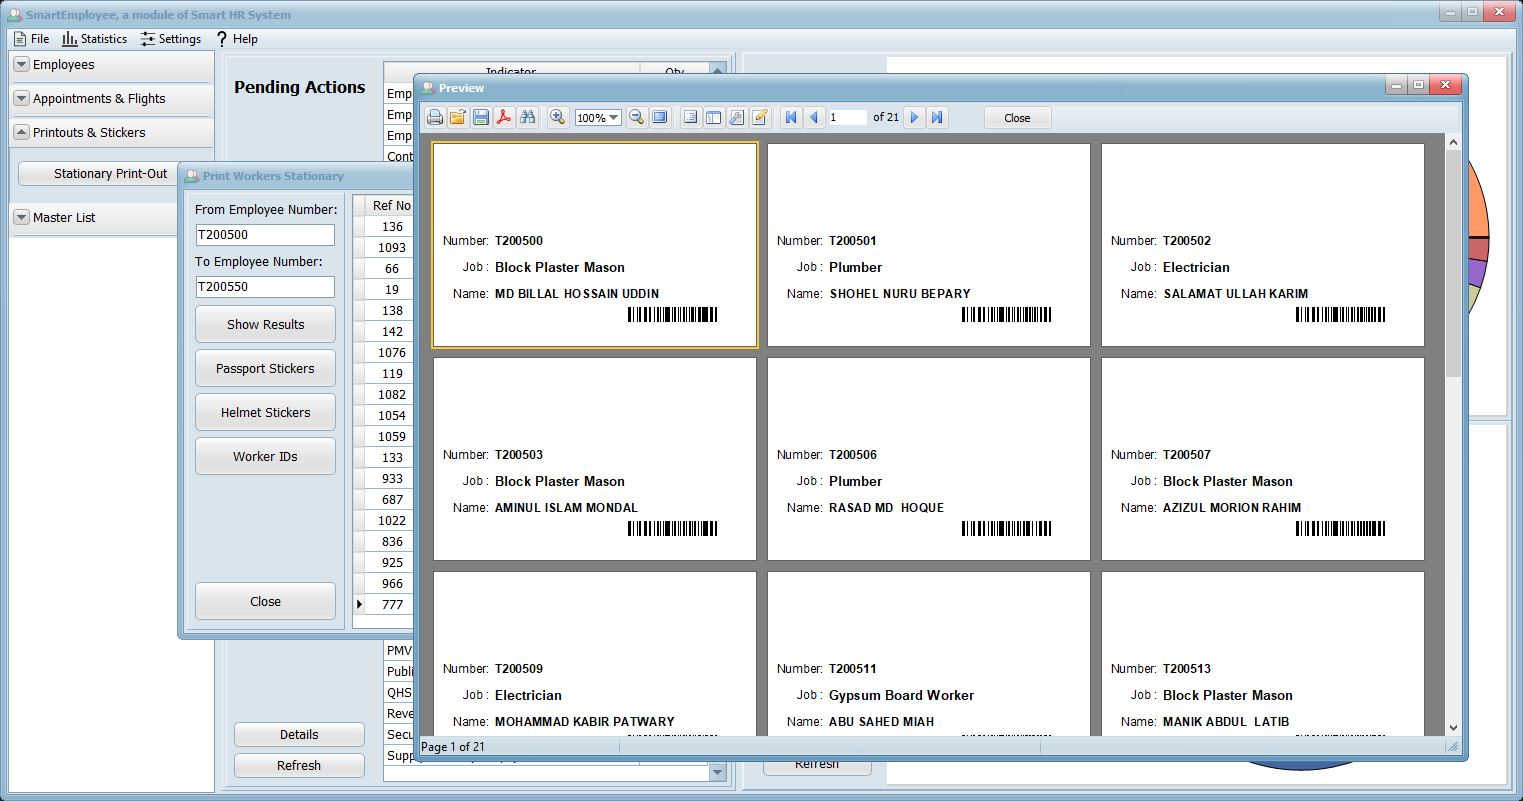 Smart HR System - Work ID Printing Management